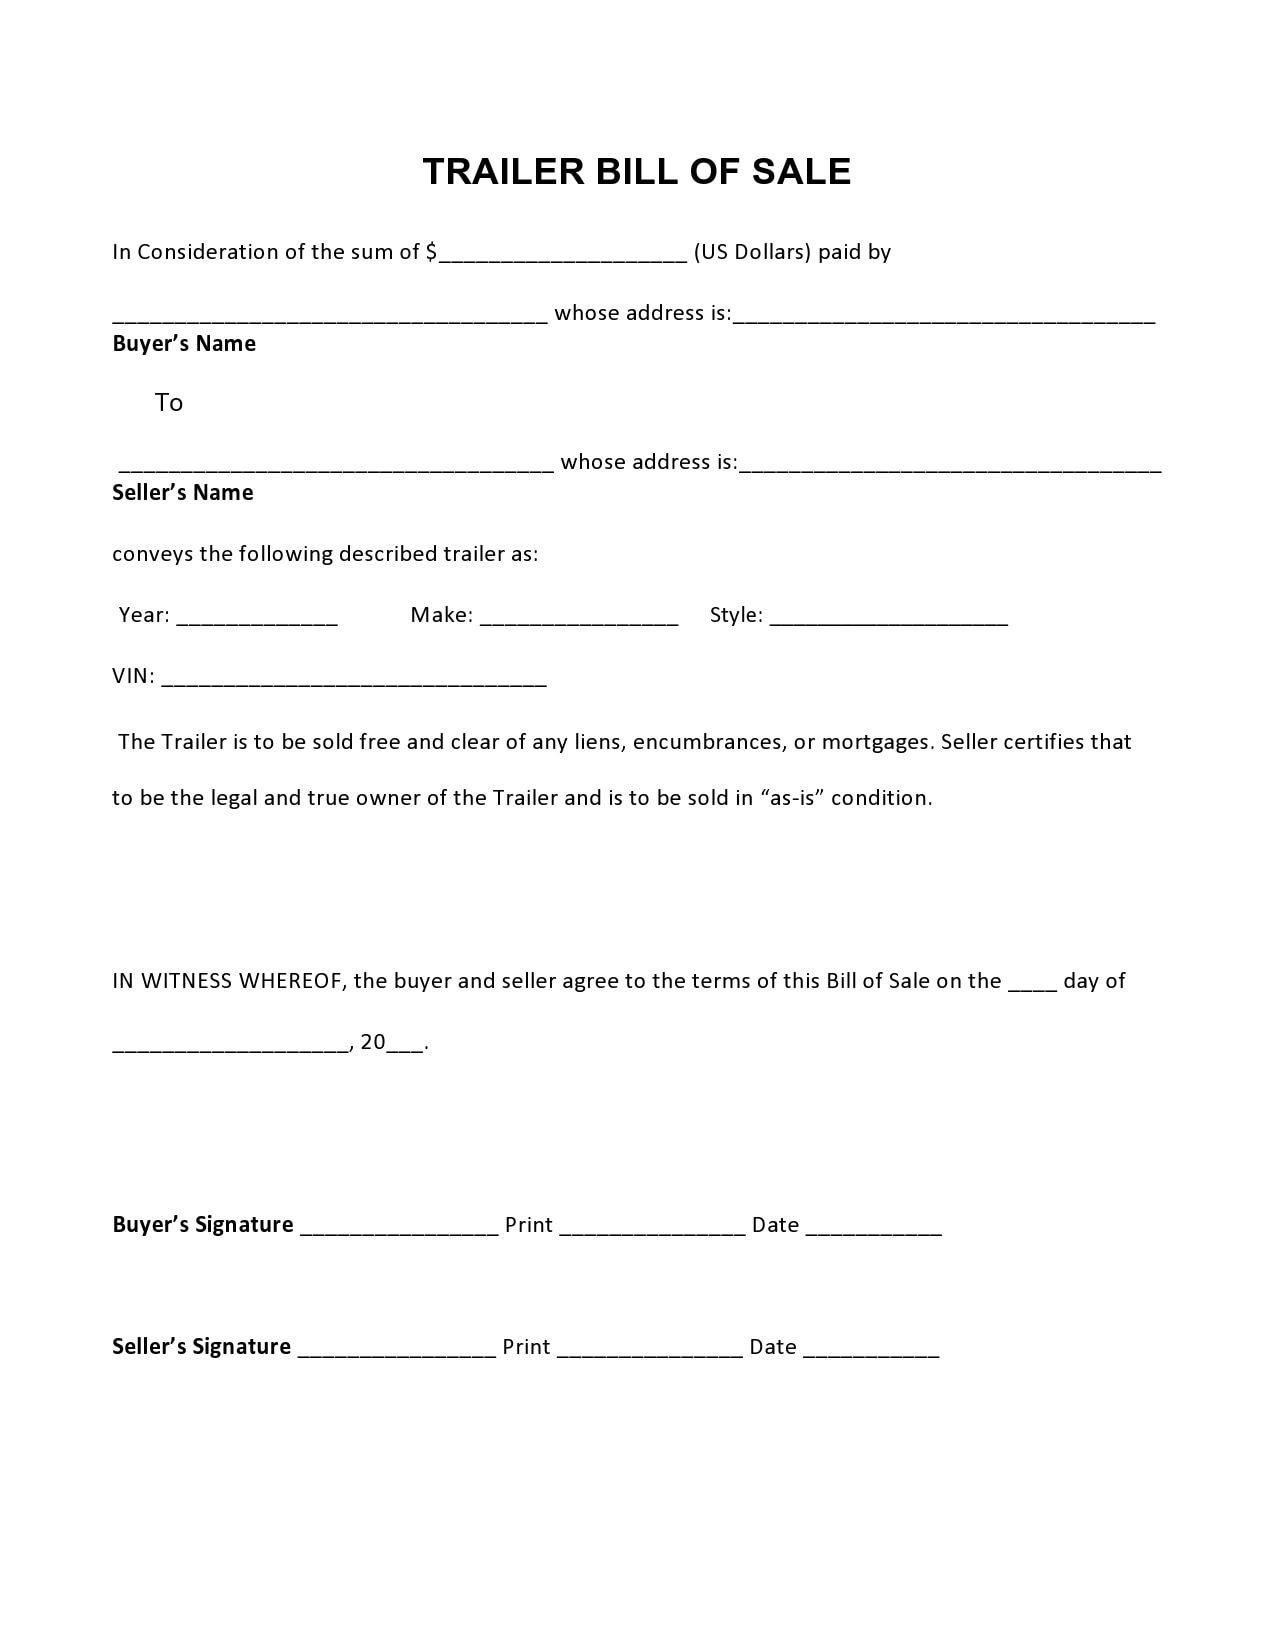 bill of sale for trailer 18